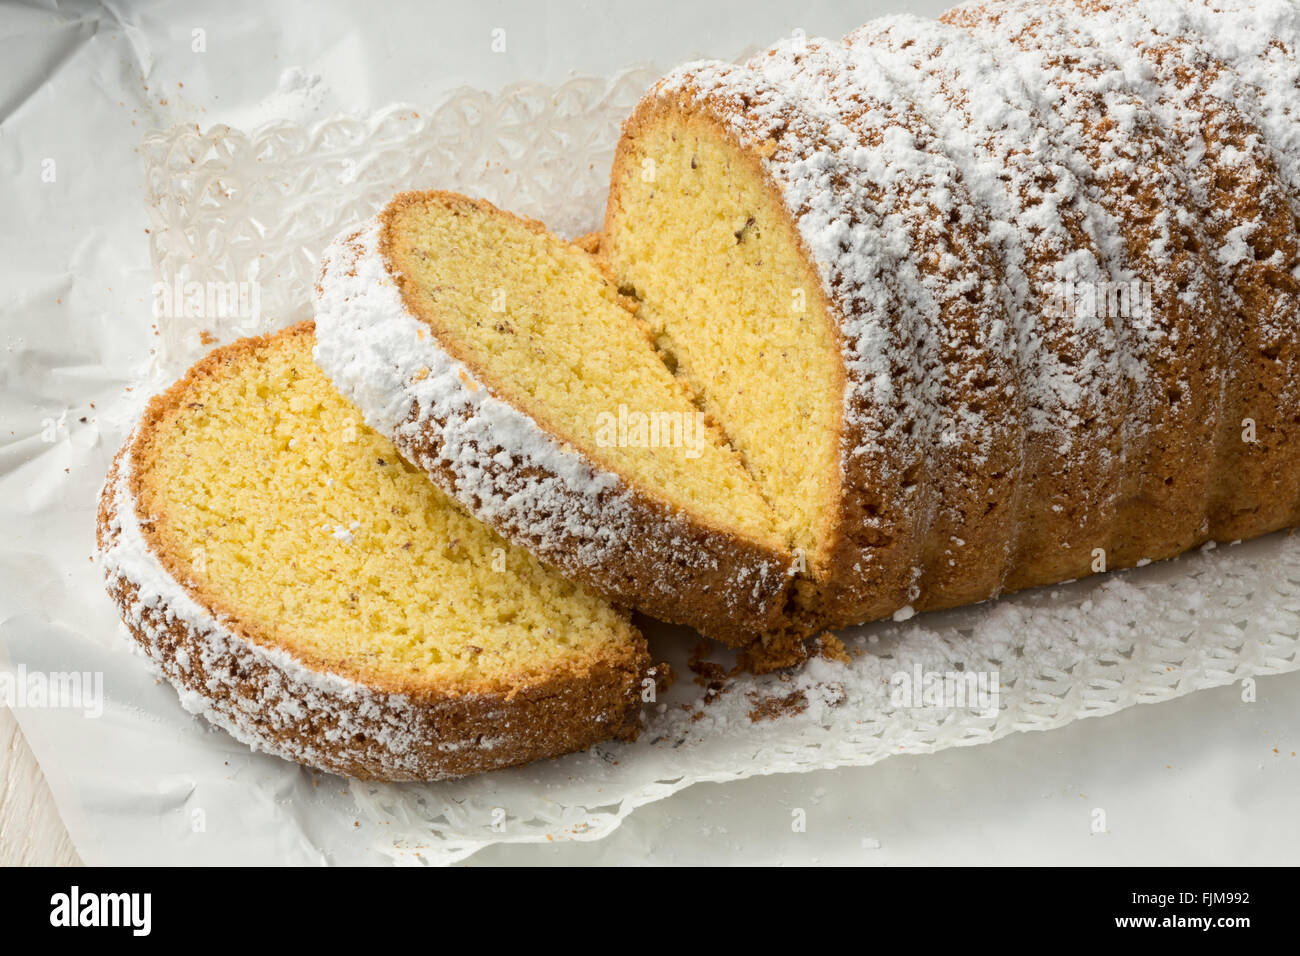 Dolce Varese, made with corn flour and ground almonds, from Varese, Lombardy, Italy - Stock Image